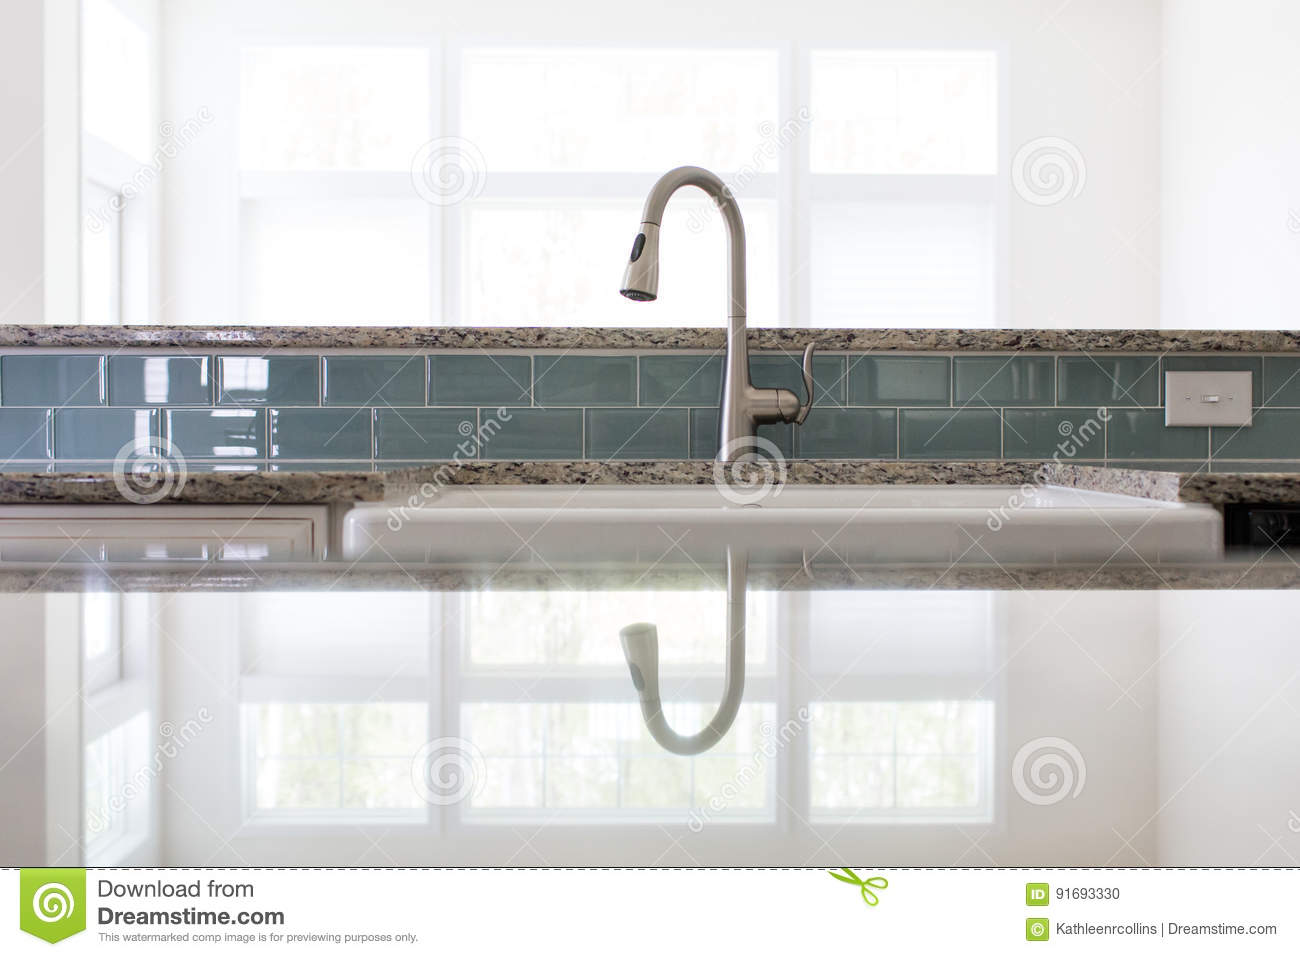 - Kitchen Sink Faucet Stock Photo. Image Of Countertop - 91693330